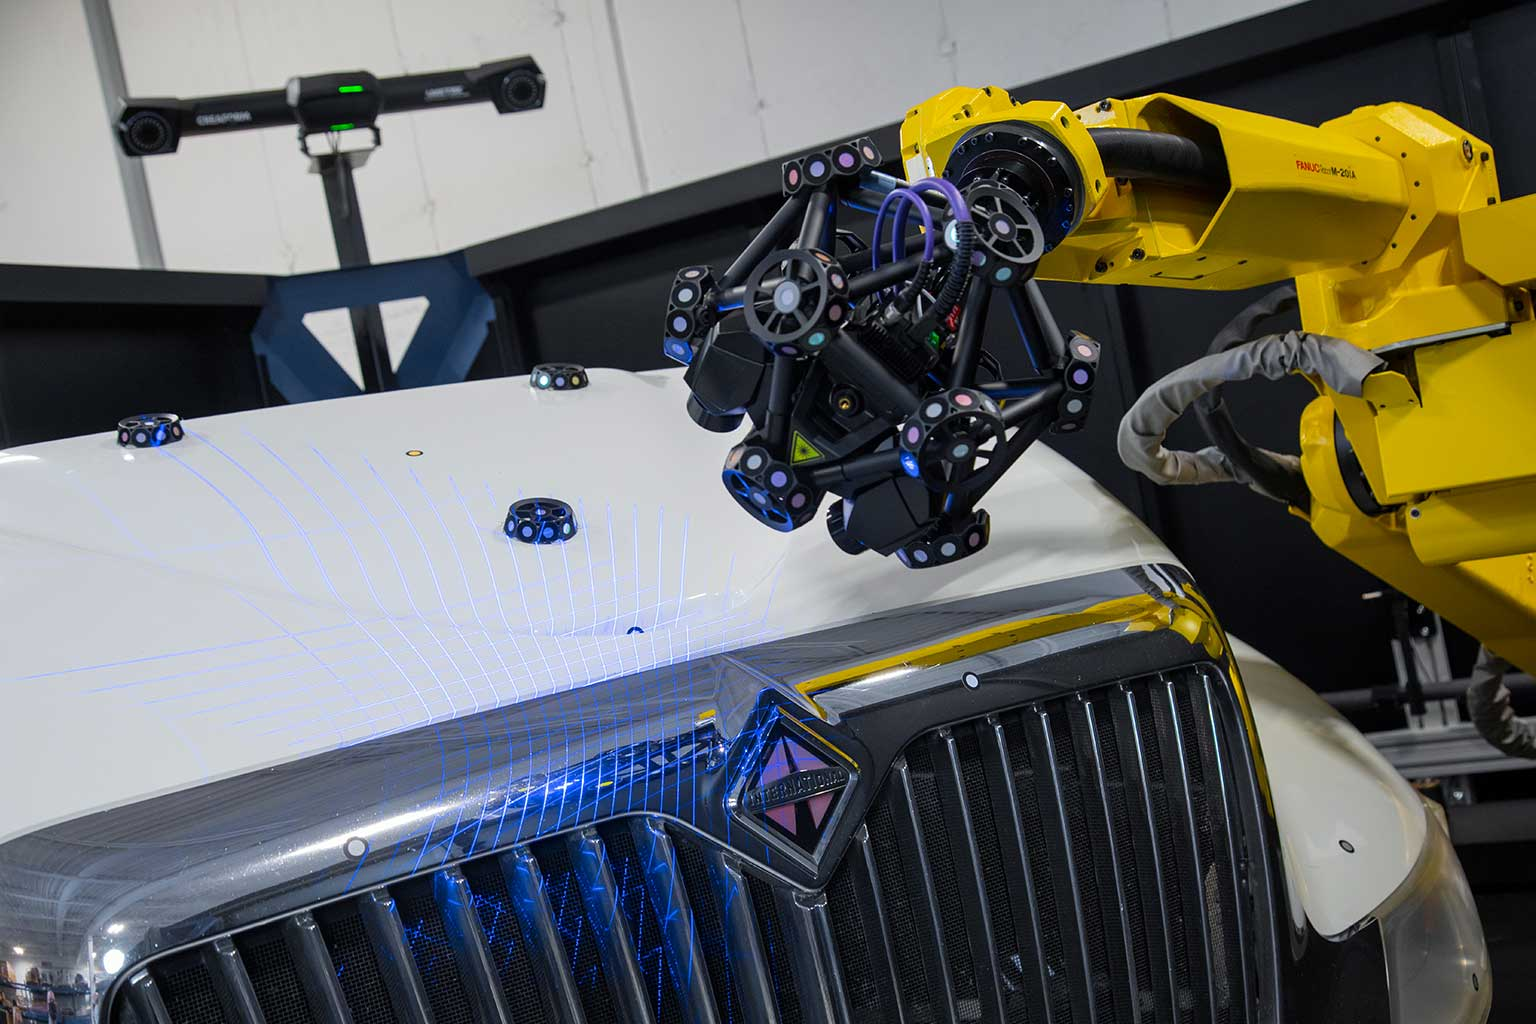 R-series robot mounted MetraSCAN 3D optical CMM scanning bumper and hood of white International truck with blue laser and C-track in background